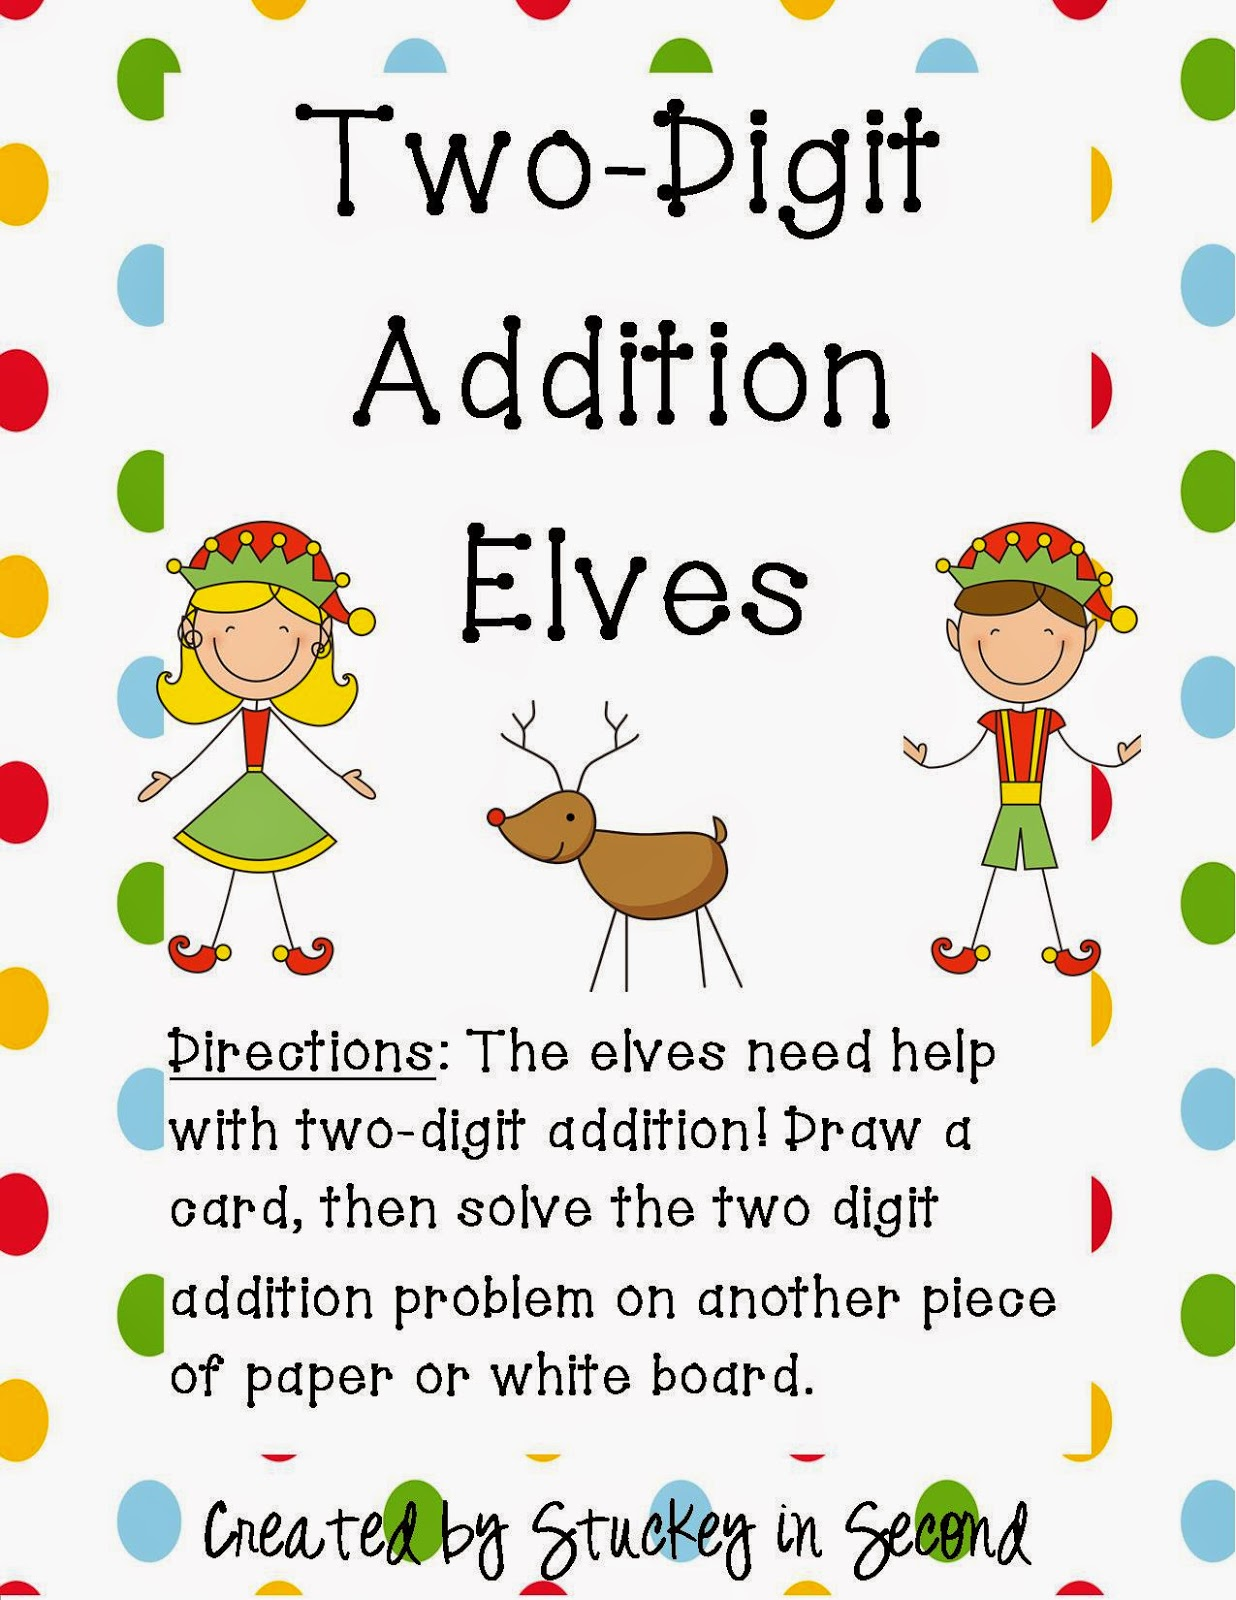 http://www.teacherspayteachers.com/Product/Two-Digit-Elf-Math-Centers-2-Centers-423757